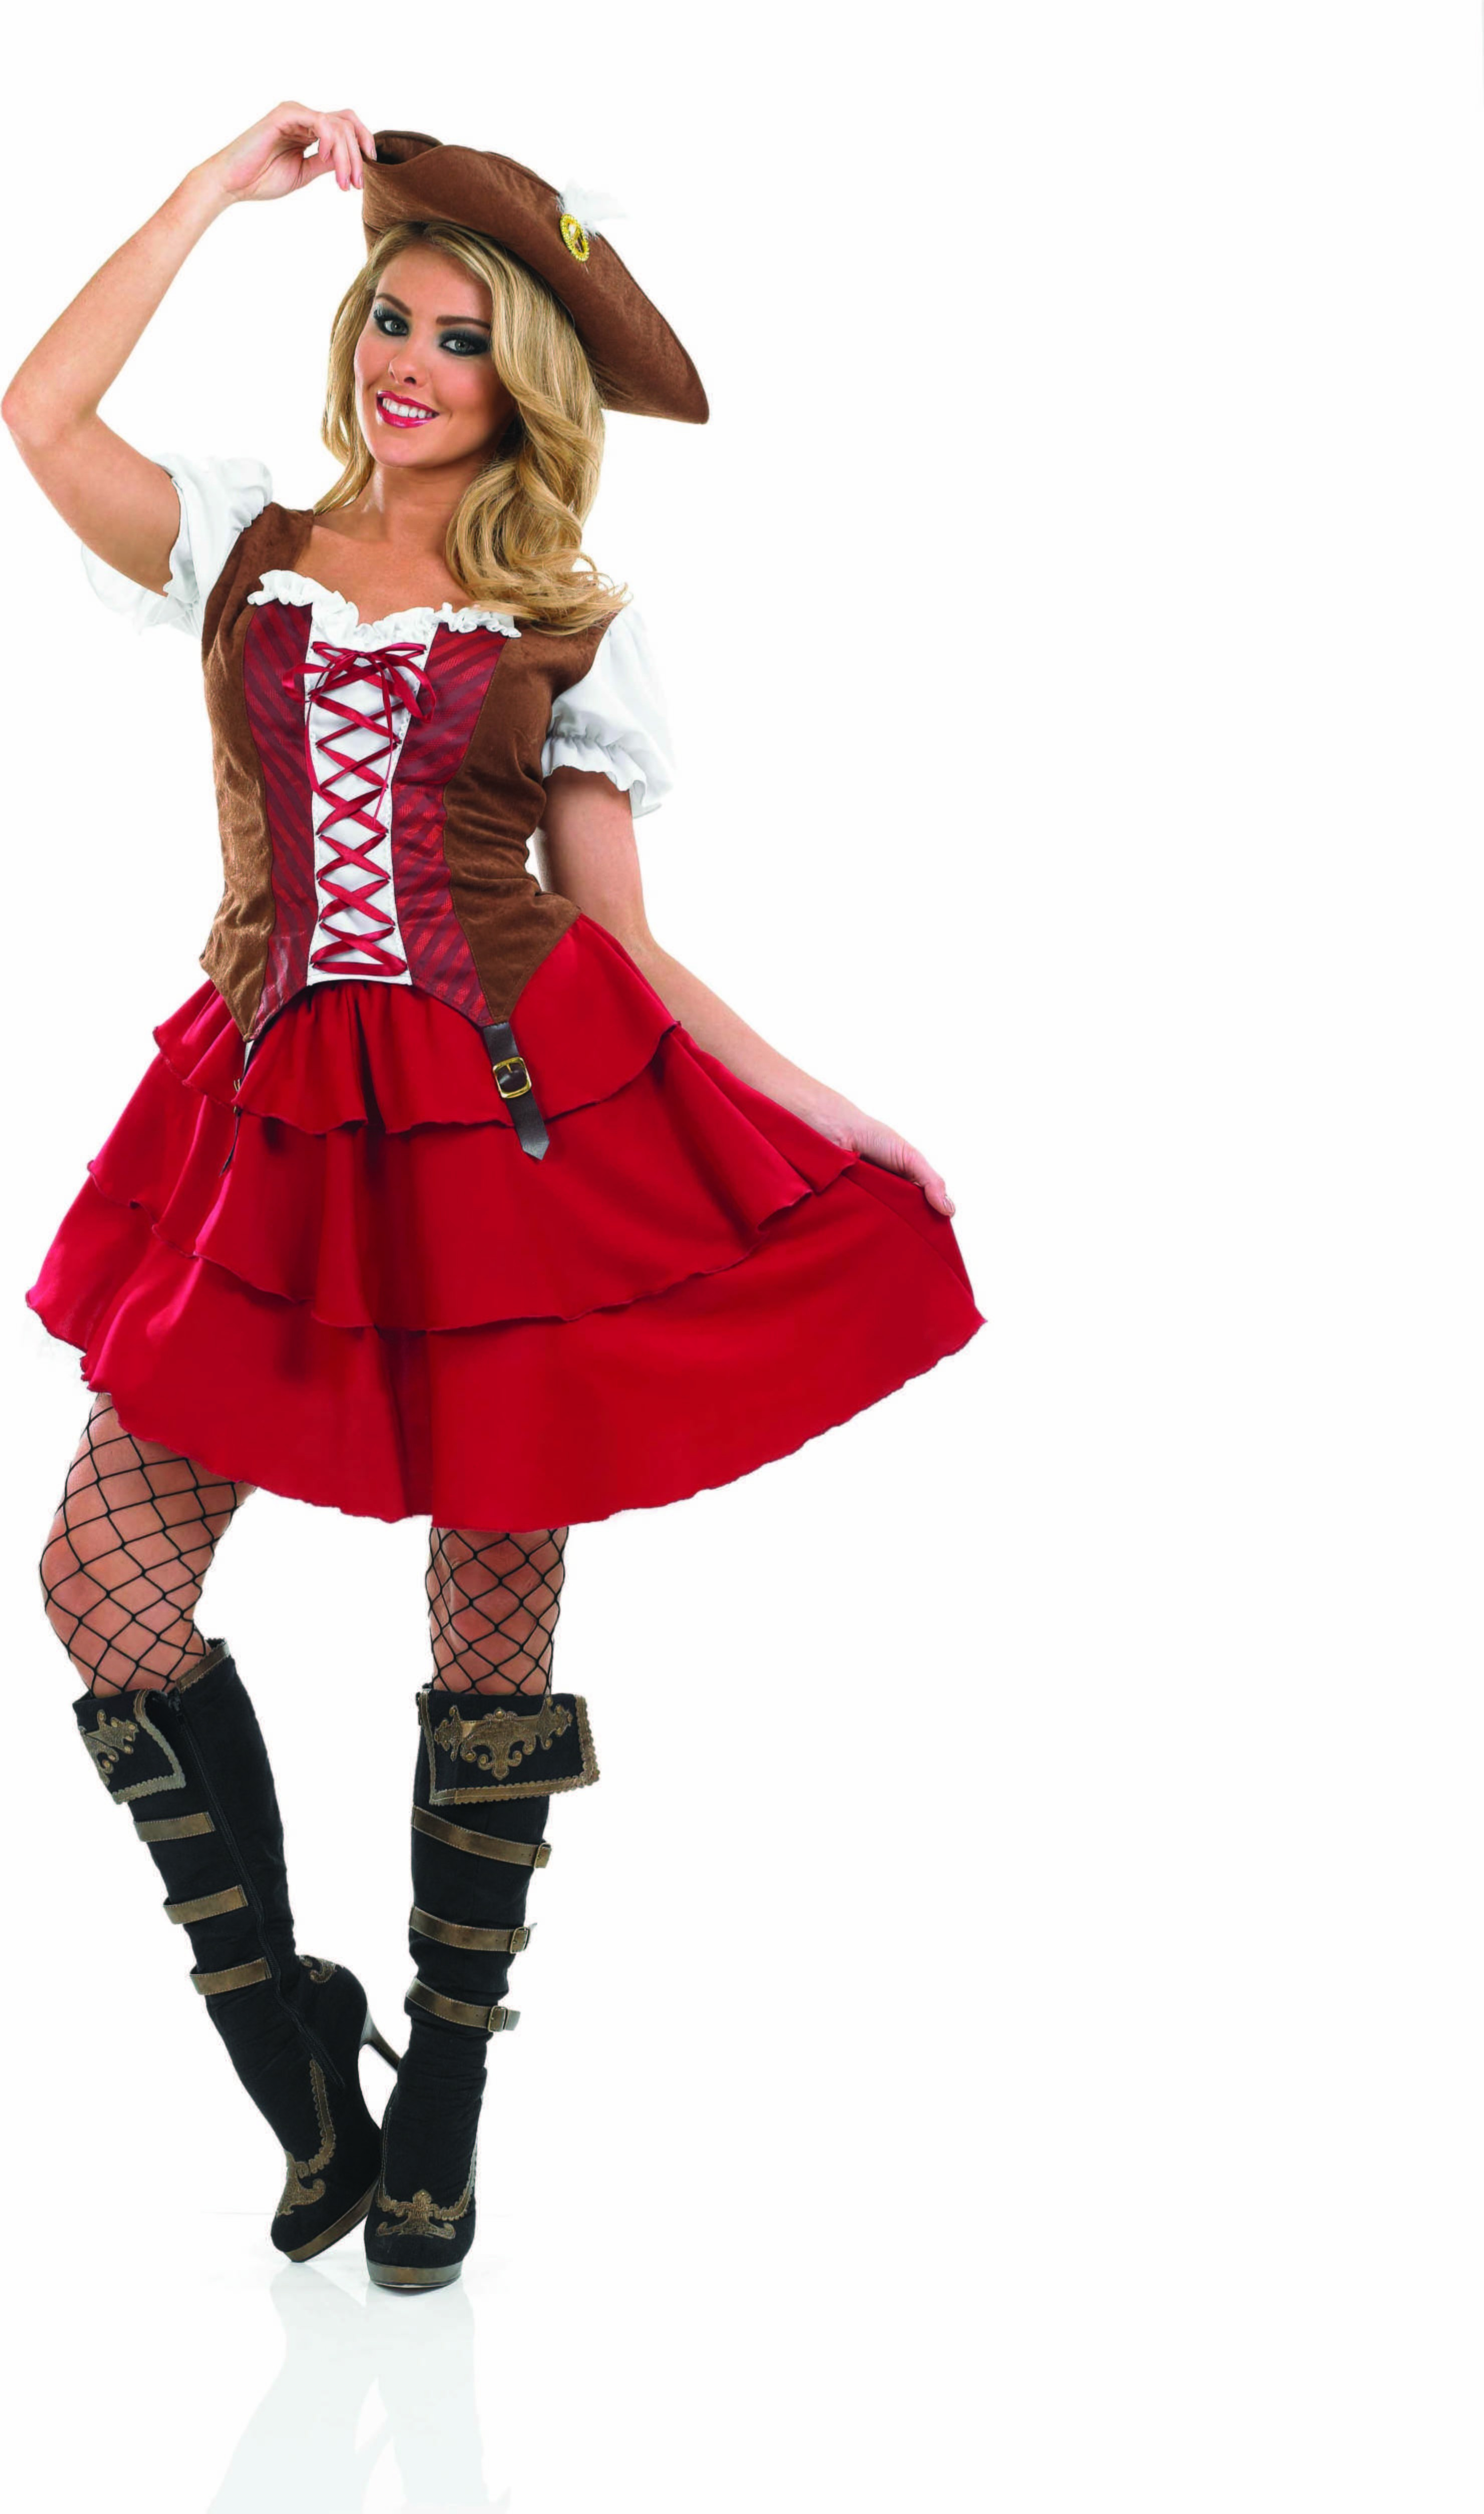 Ladies Deck Hand Girl Pirates Outfit - (Red, Brown)